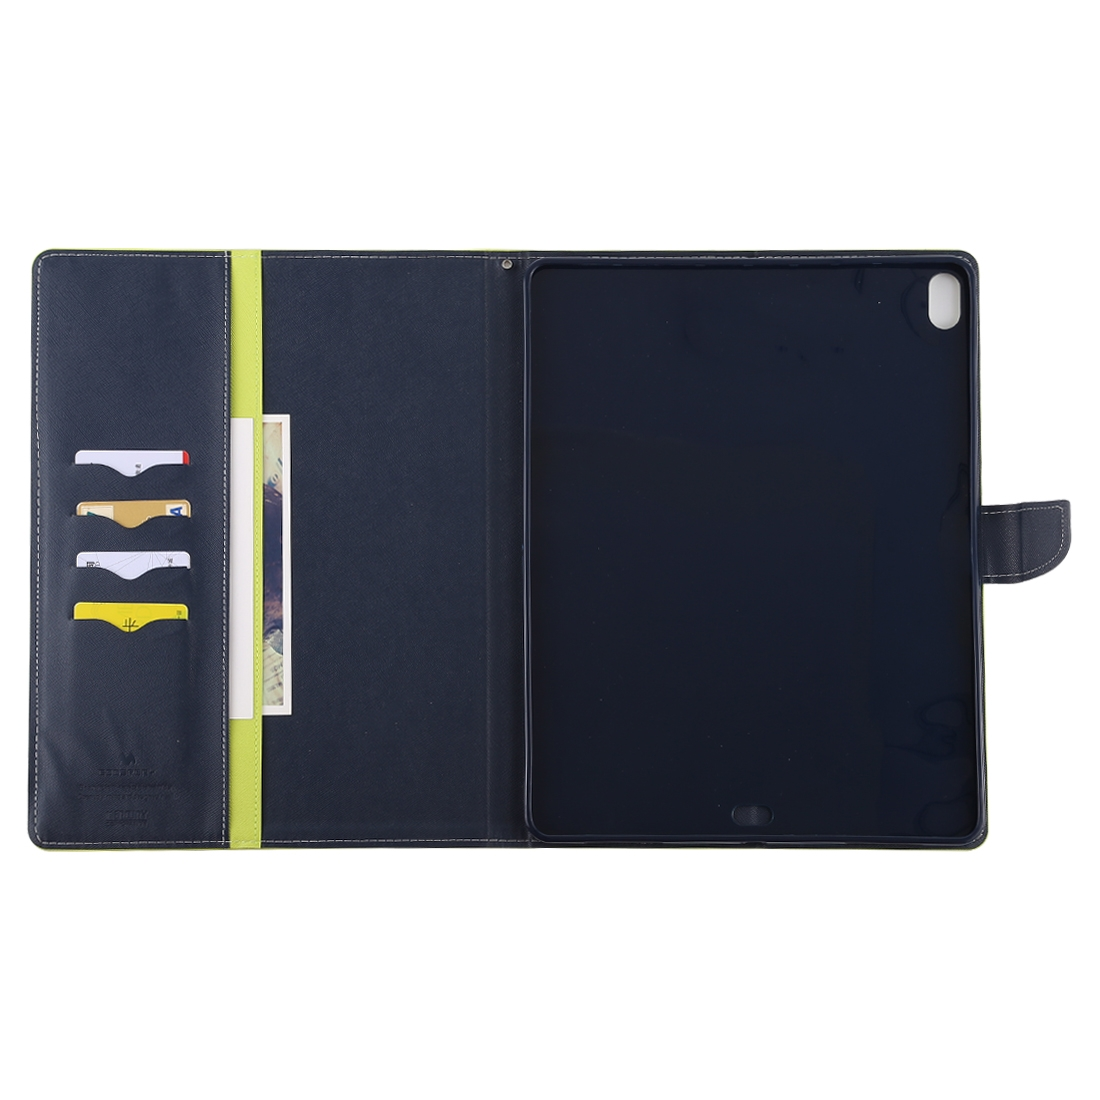 Case Leather iPad Pro 12.9 Case (2018) Slim Profile (Green)